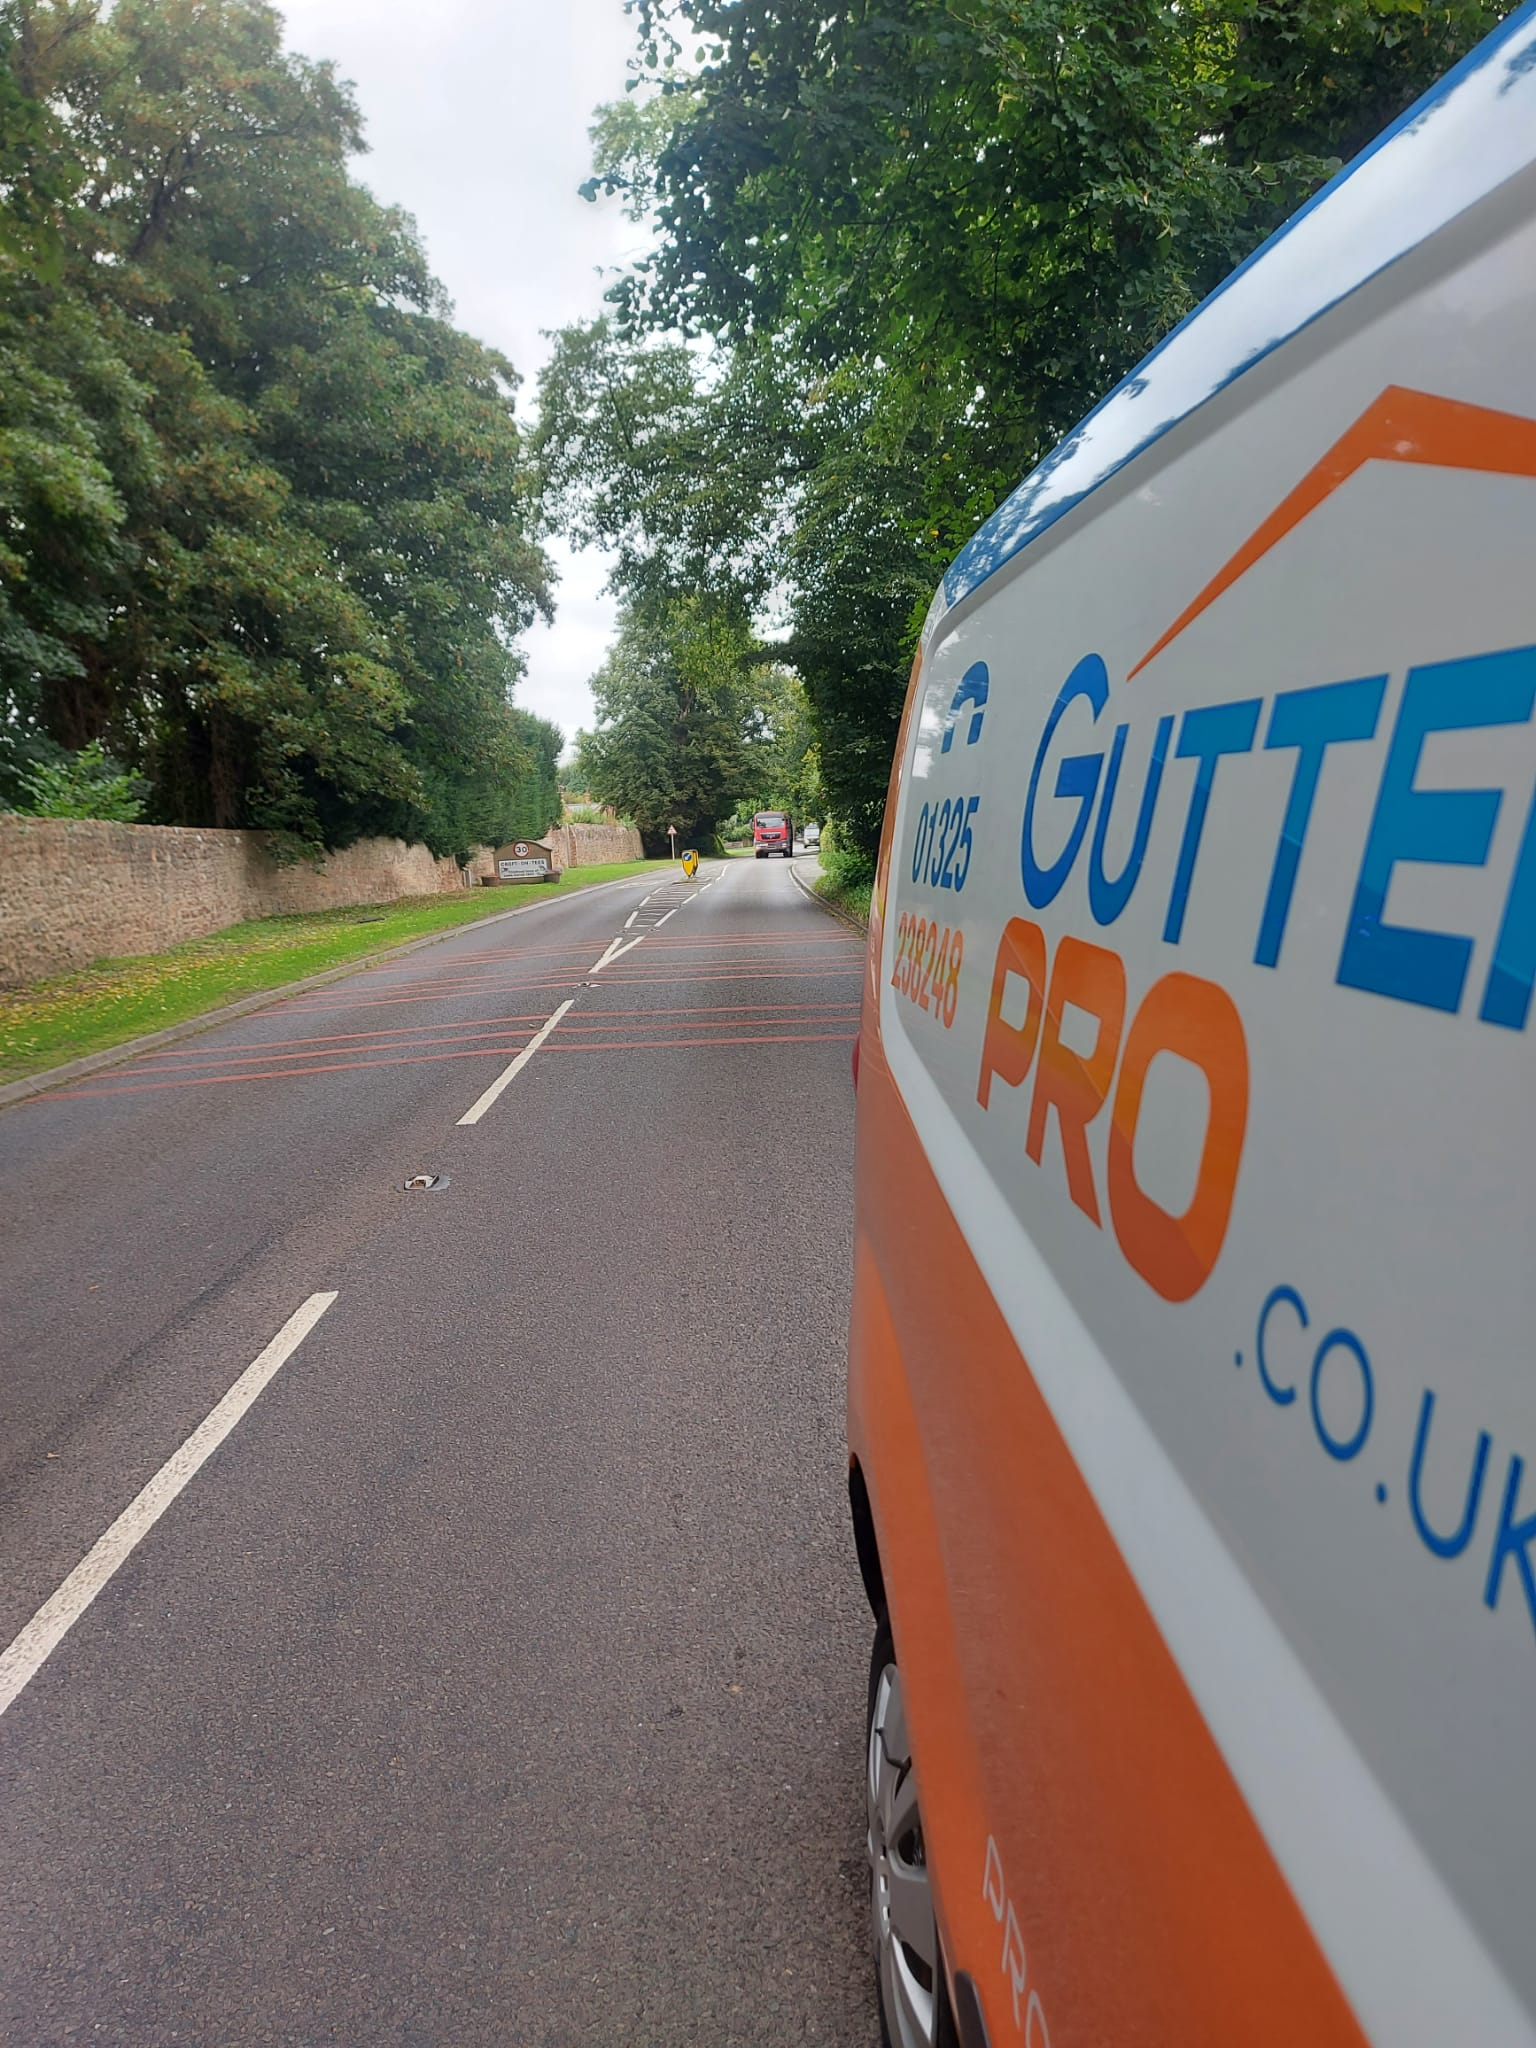 Gutter Cleaning Croft-on-Tees